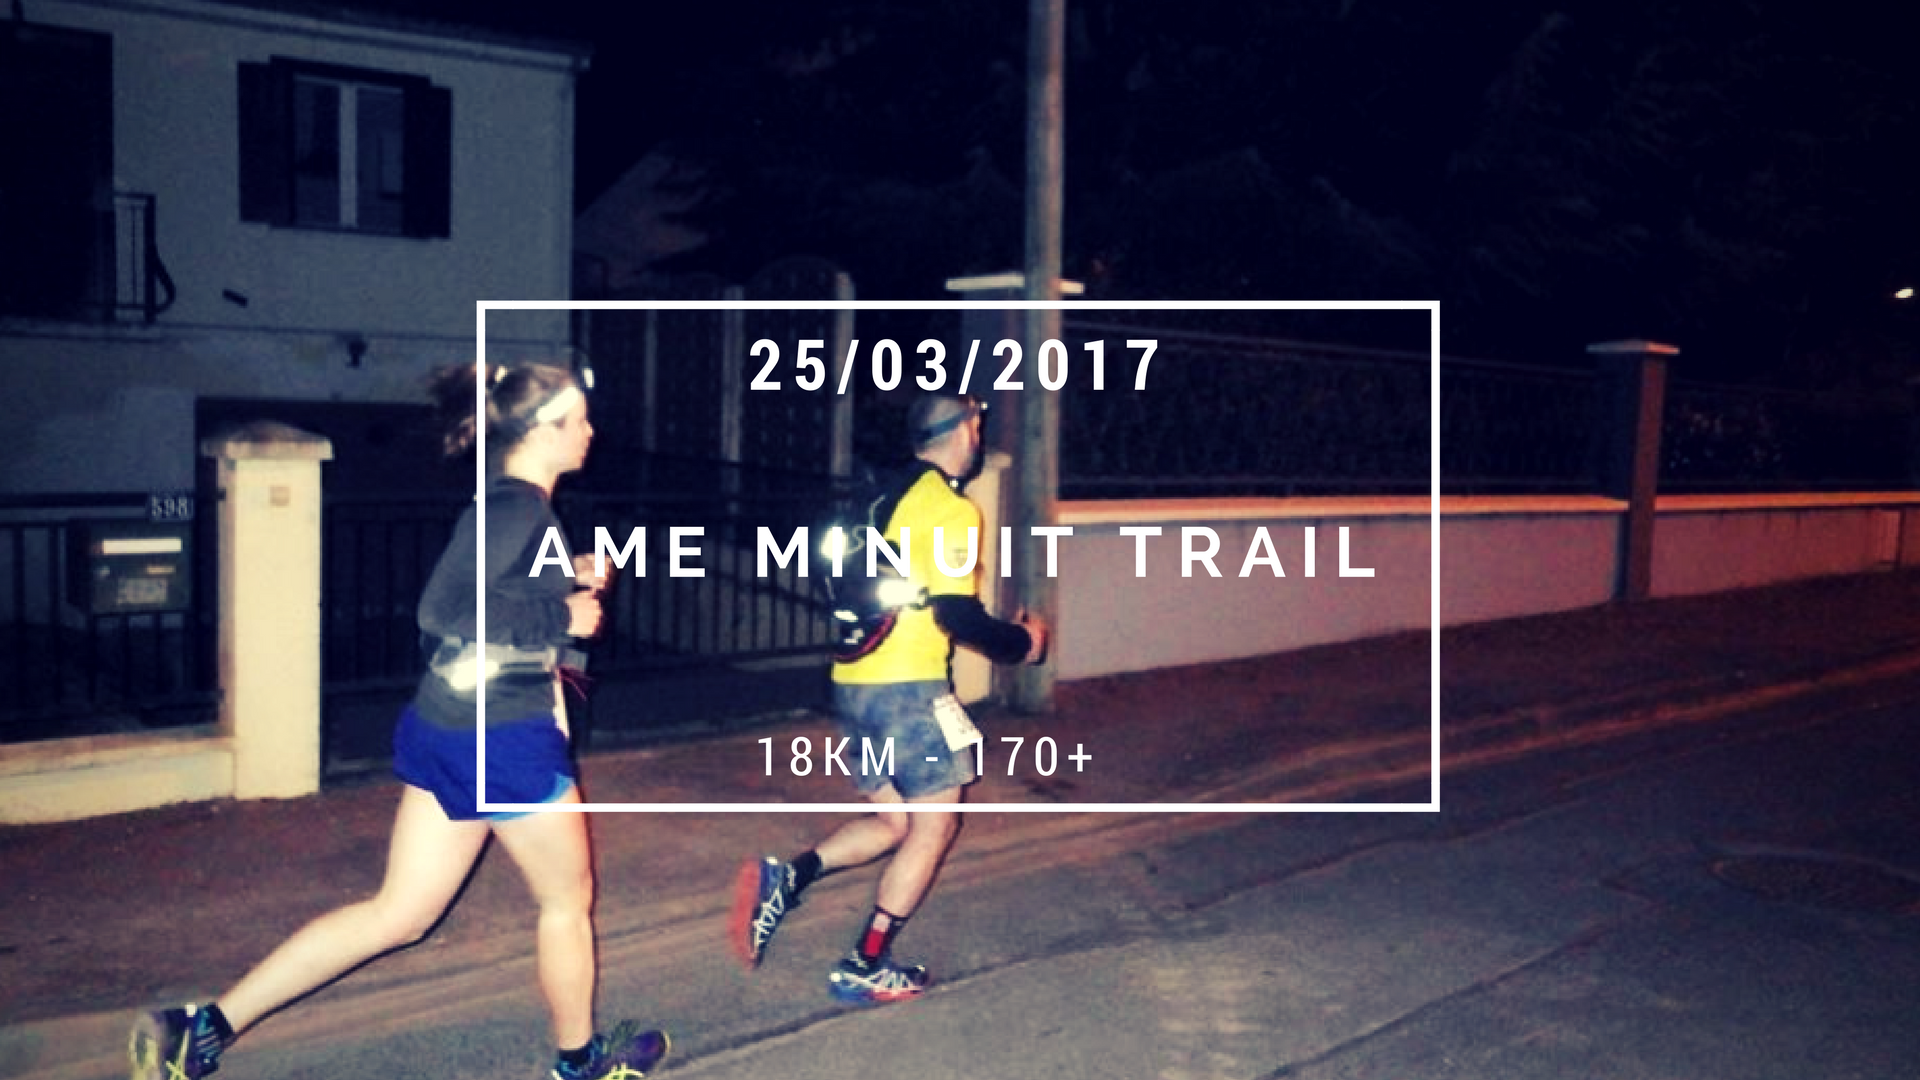 AME minuit trail amilly 2017